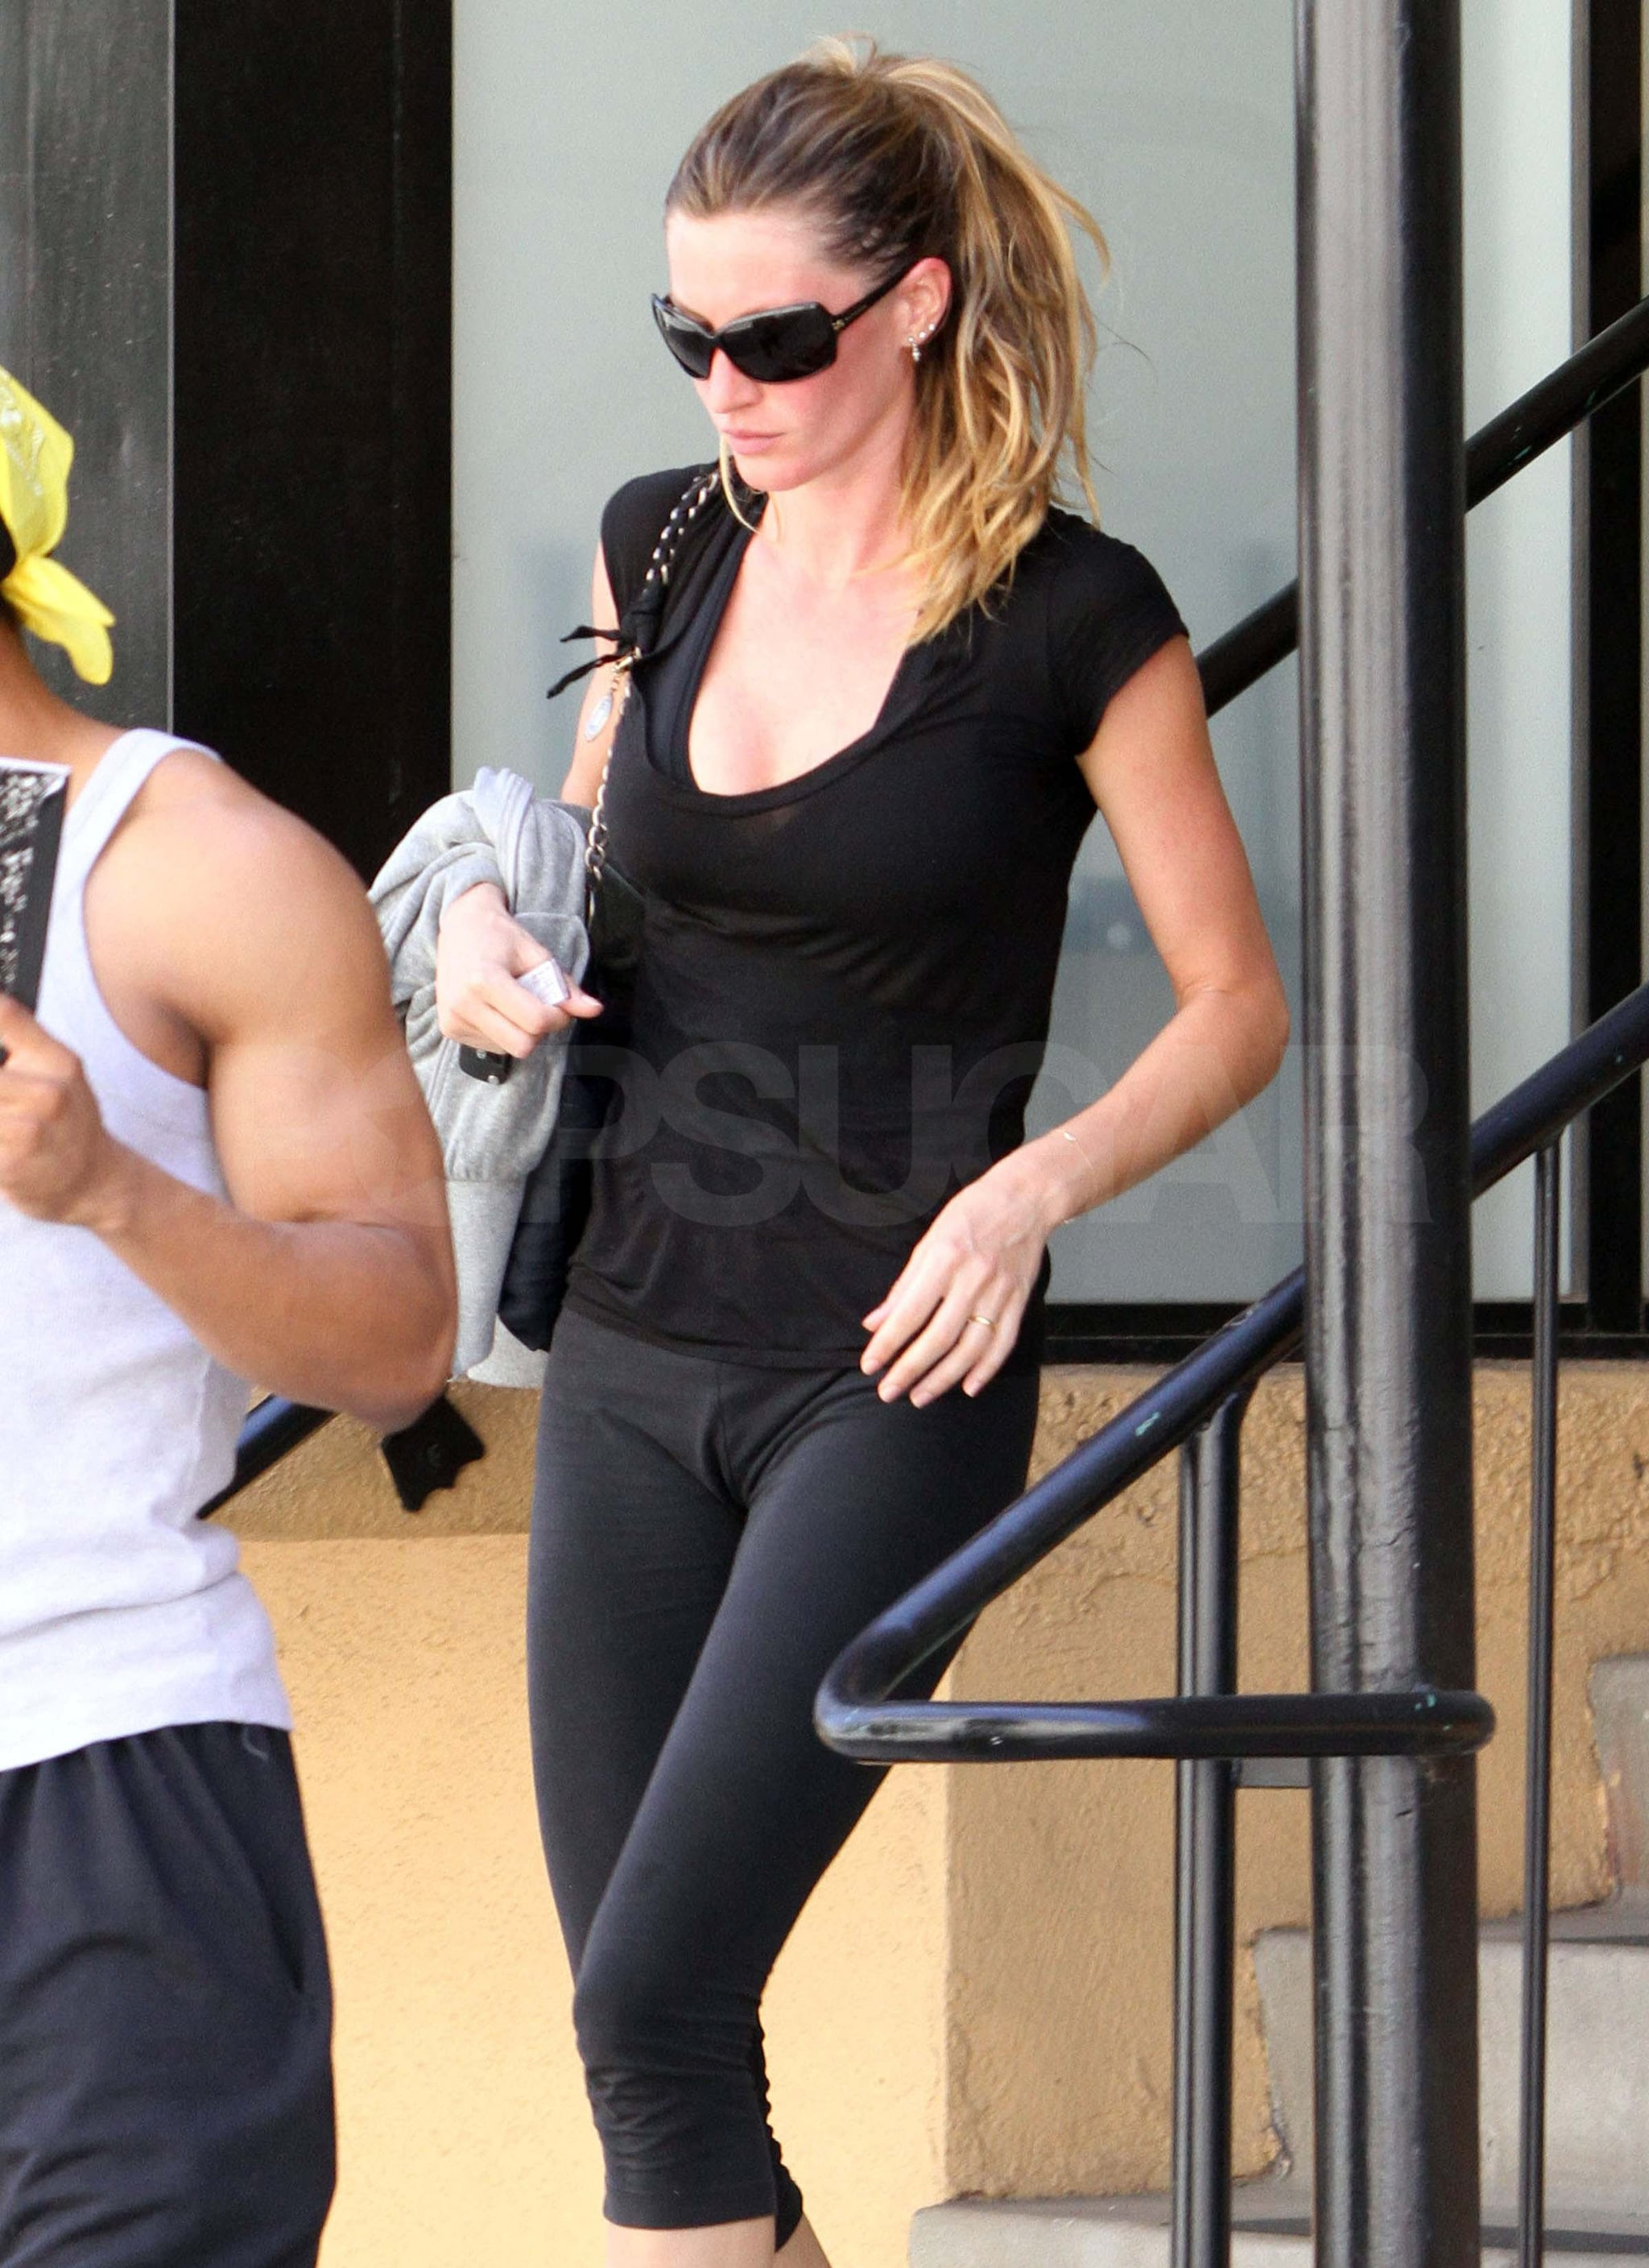 Pictures of Gisele Bundchen In Workout Clothes Leaving Gym ... Gisele Bundchen Workout